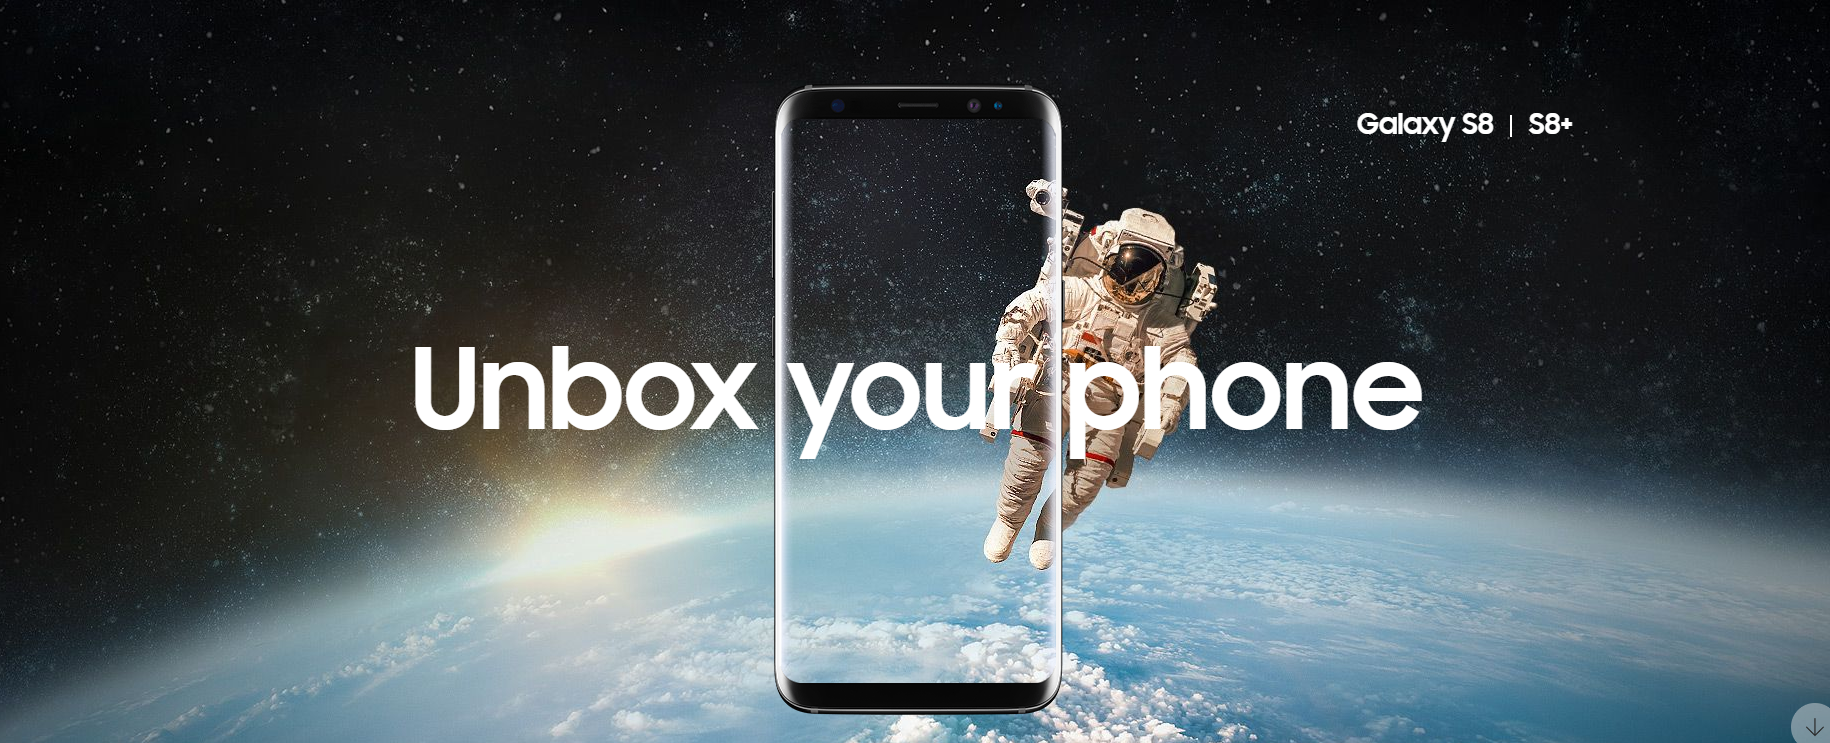 Samsung announces new Galaxy S8 and S8+